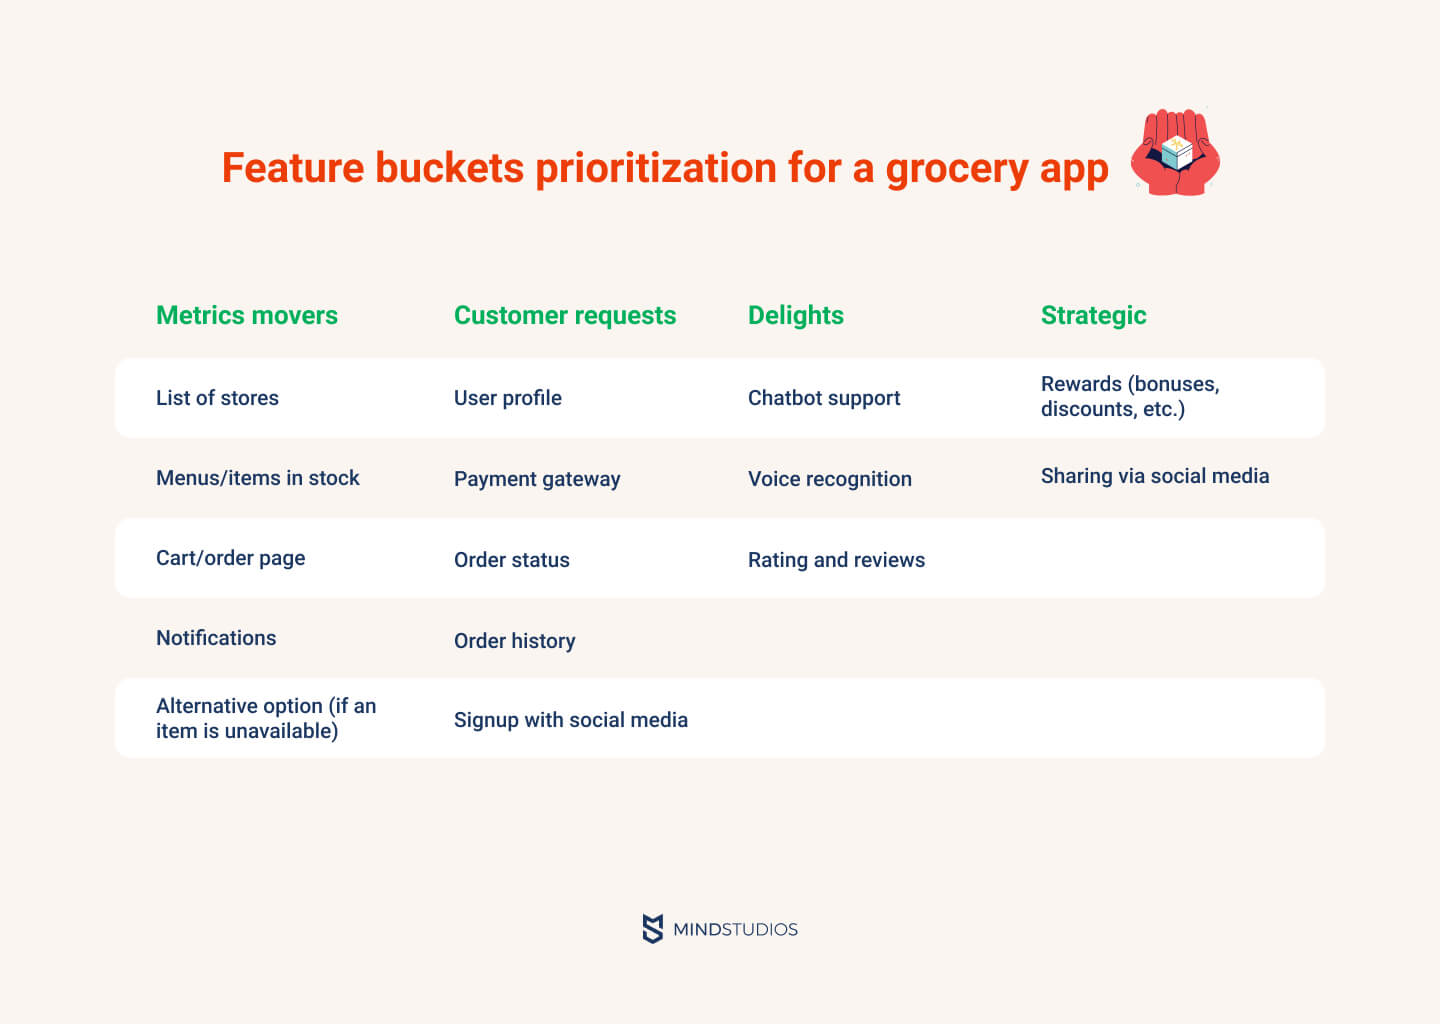 Feature buckets prioritization for a grocery app